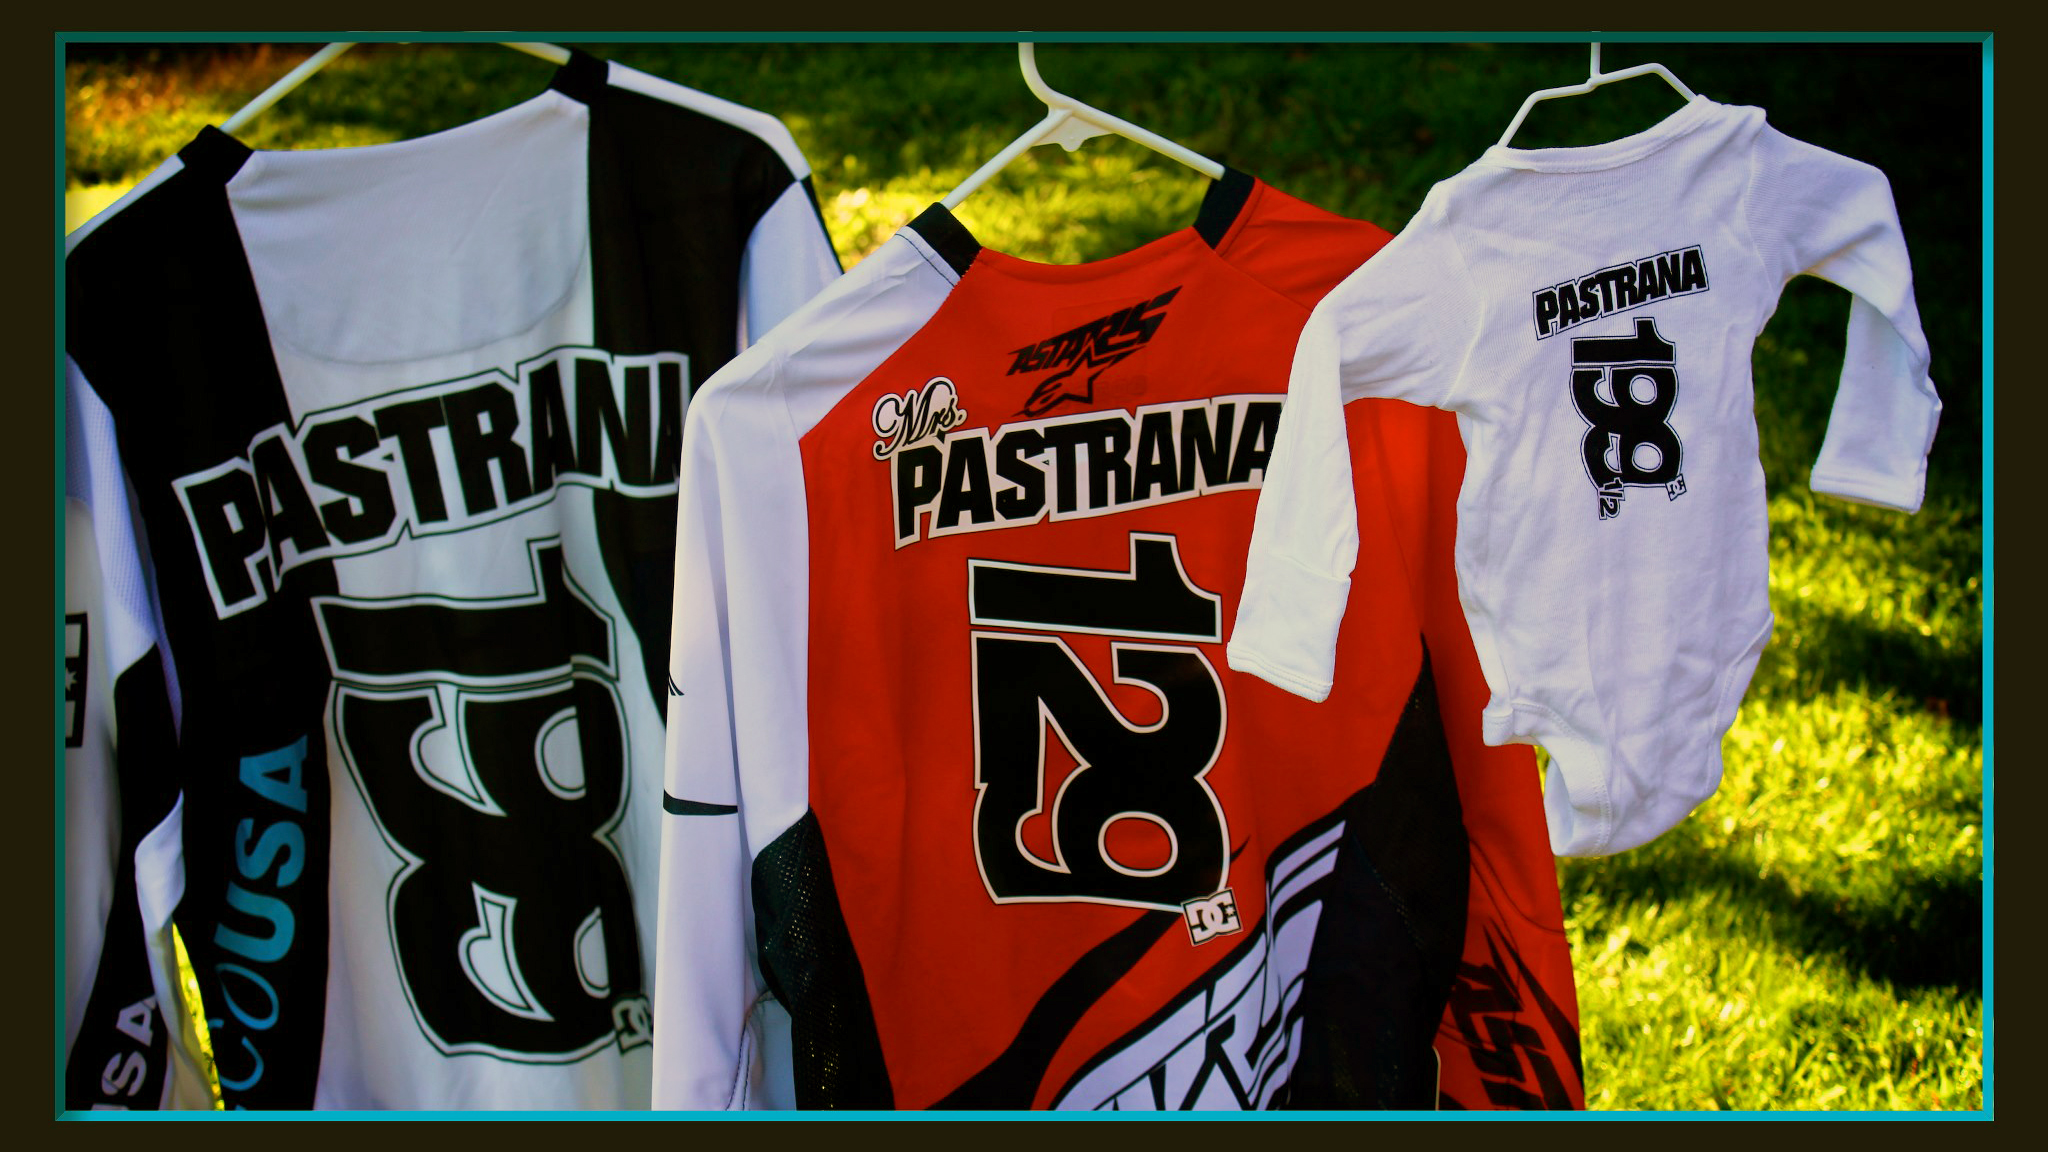 The Pastranas are excited to be adding a new number to their lineup.